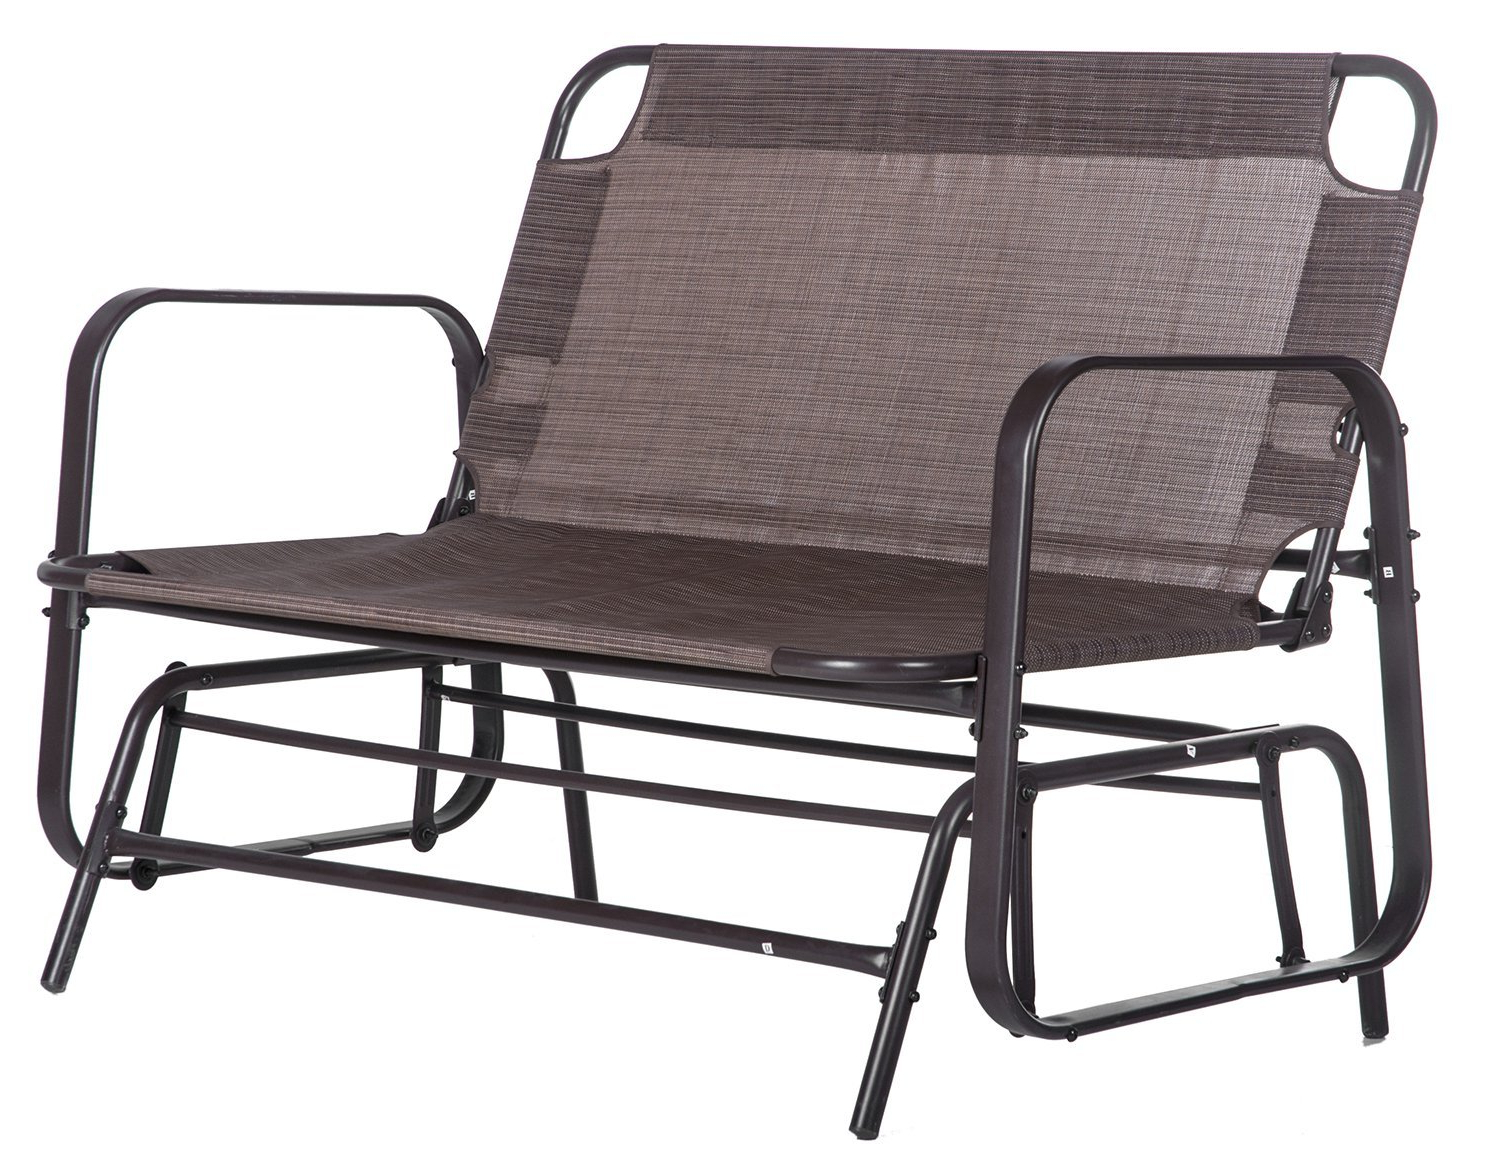 Buy Merax Patio Loveseat Glider Rocking Chair Garden Outdoor Within Well Liked Outdoor Loveseat Gliders With Cushion (Gallery 10 of 30)